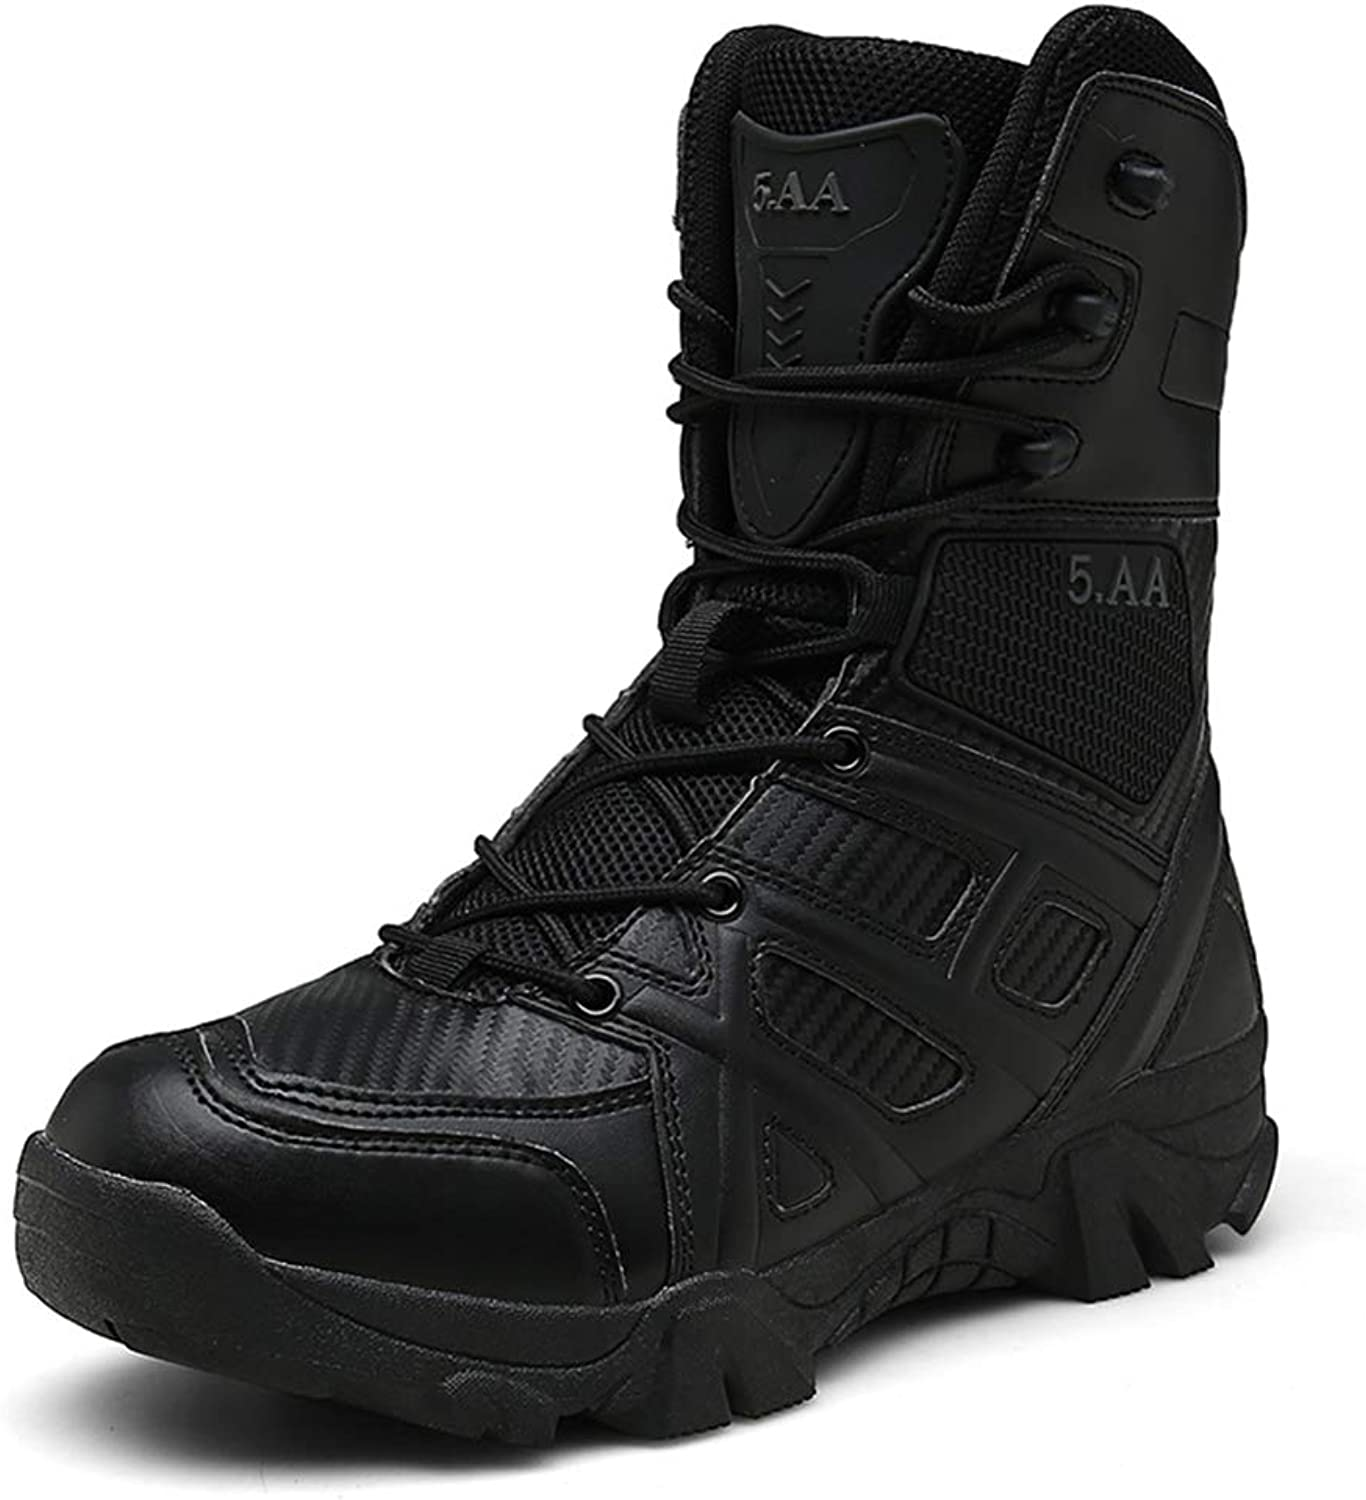 Tactical Boots Army Boot Breathable Fighting Large Size Outdoor high-top Waterproof wear-Resistant Desert Boots Non-Slip